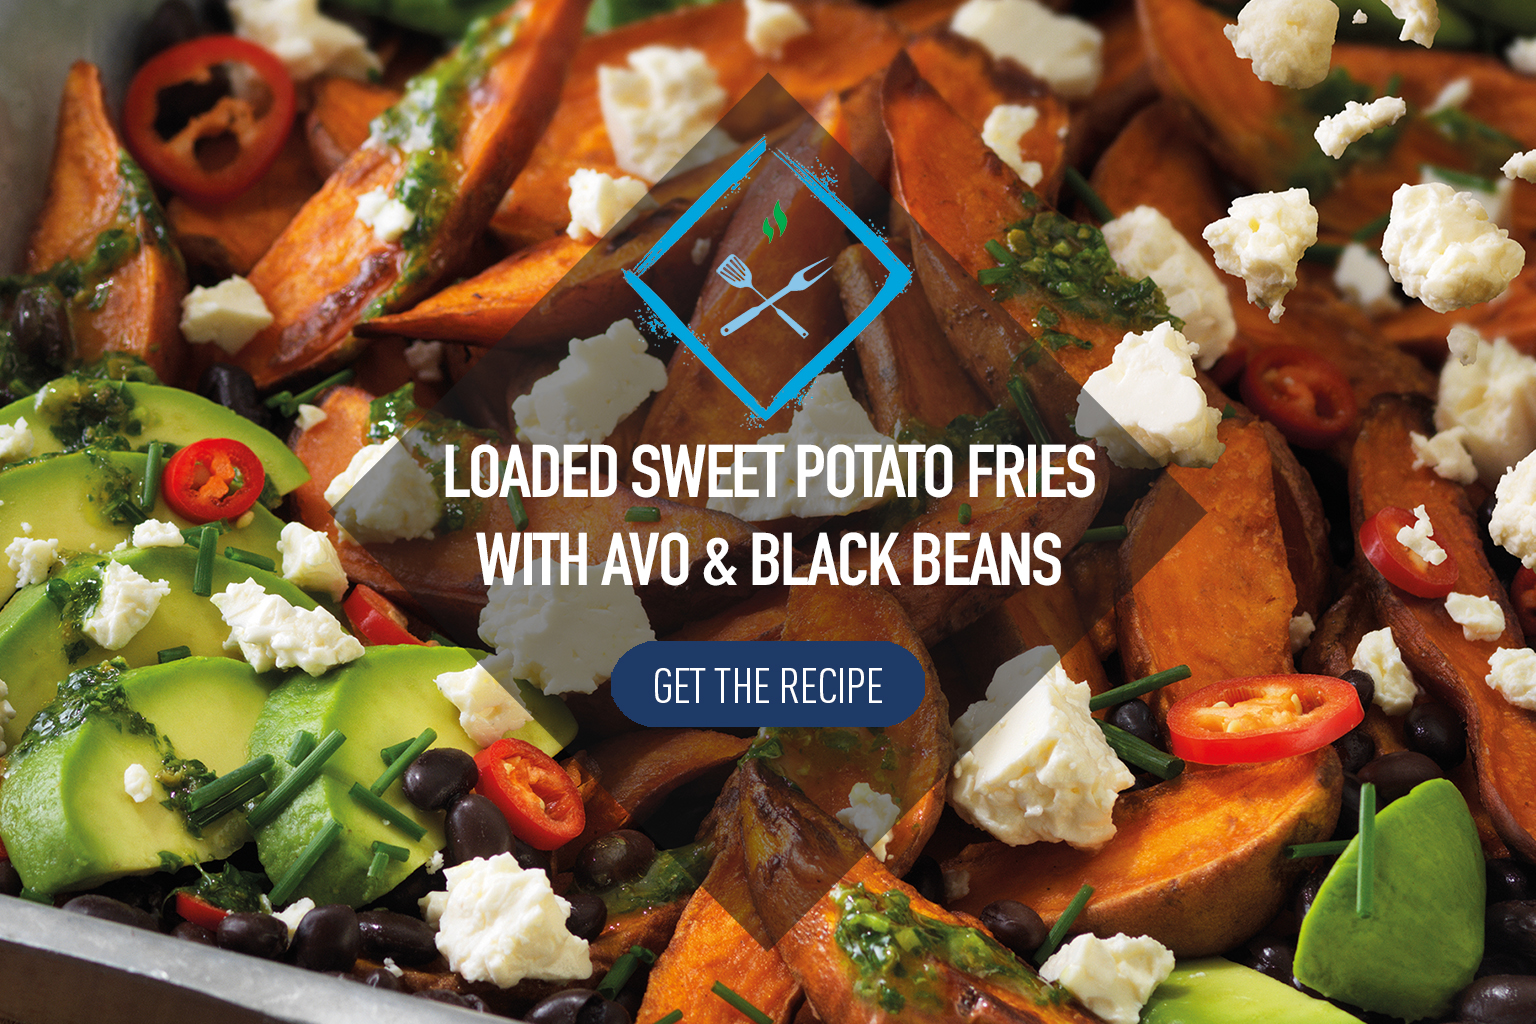 Loaded sweet potato fries with avocado and black beans